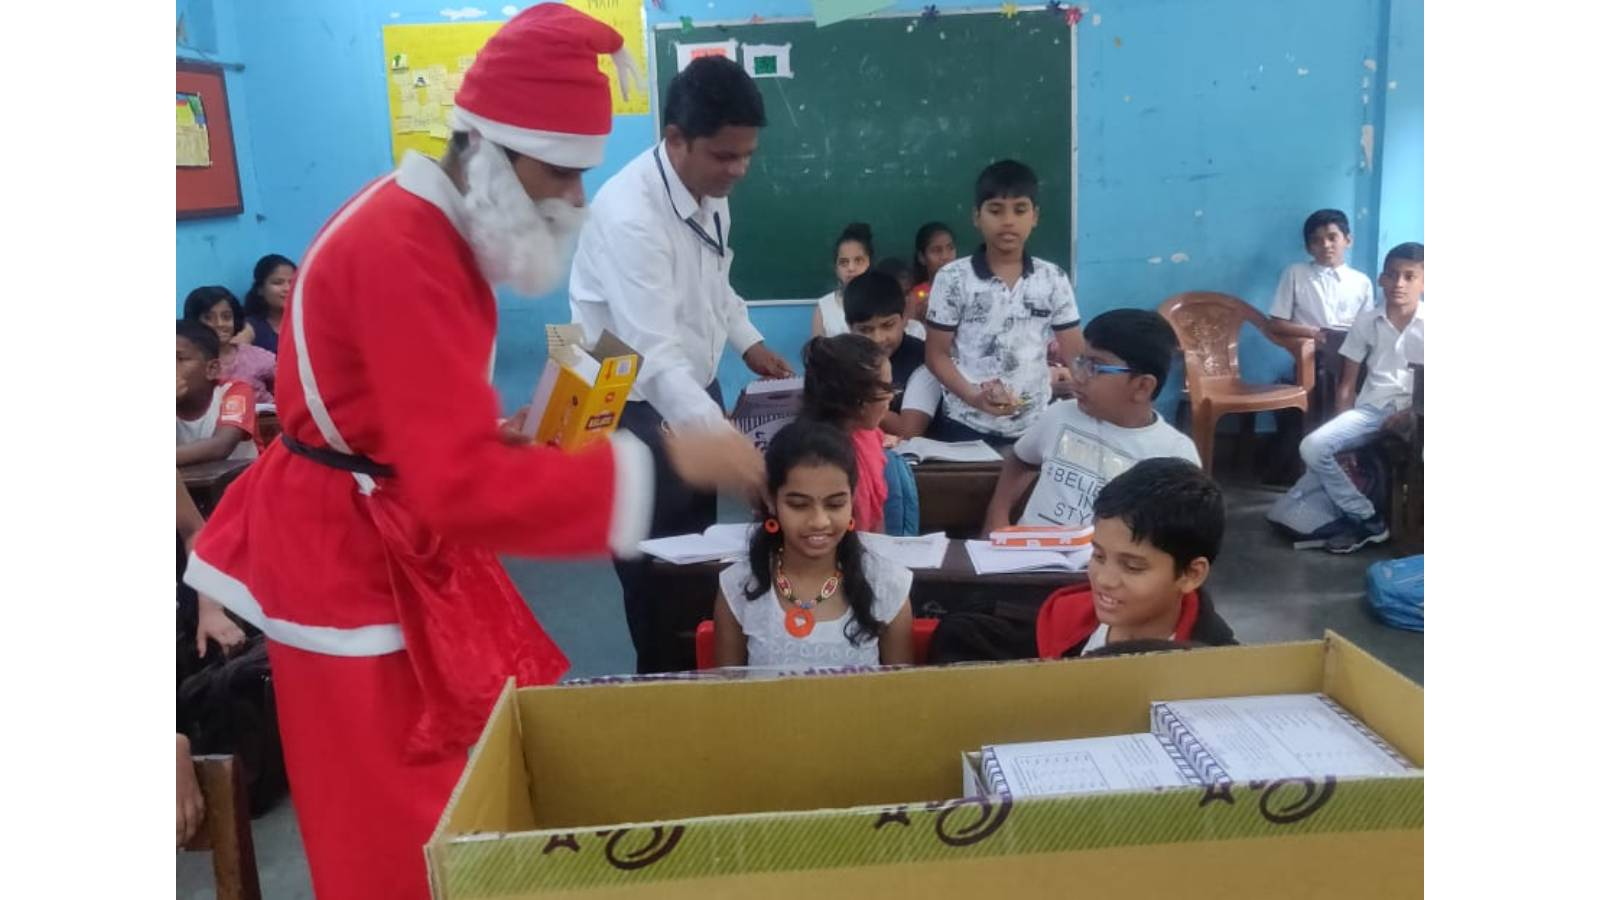 Gift an underprivileged child from Mumbai the Wings of quality education in an English medium school with a holistic program!